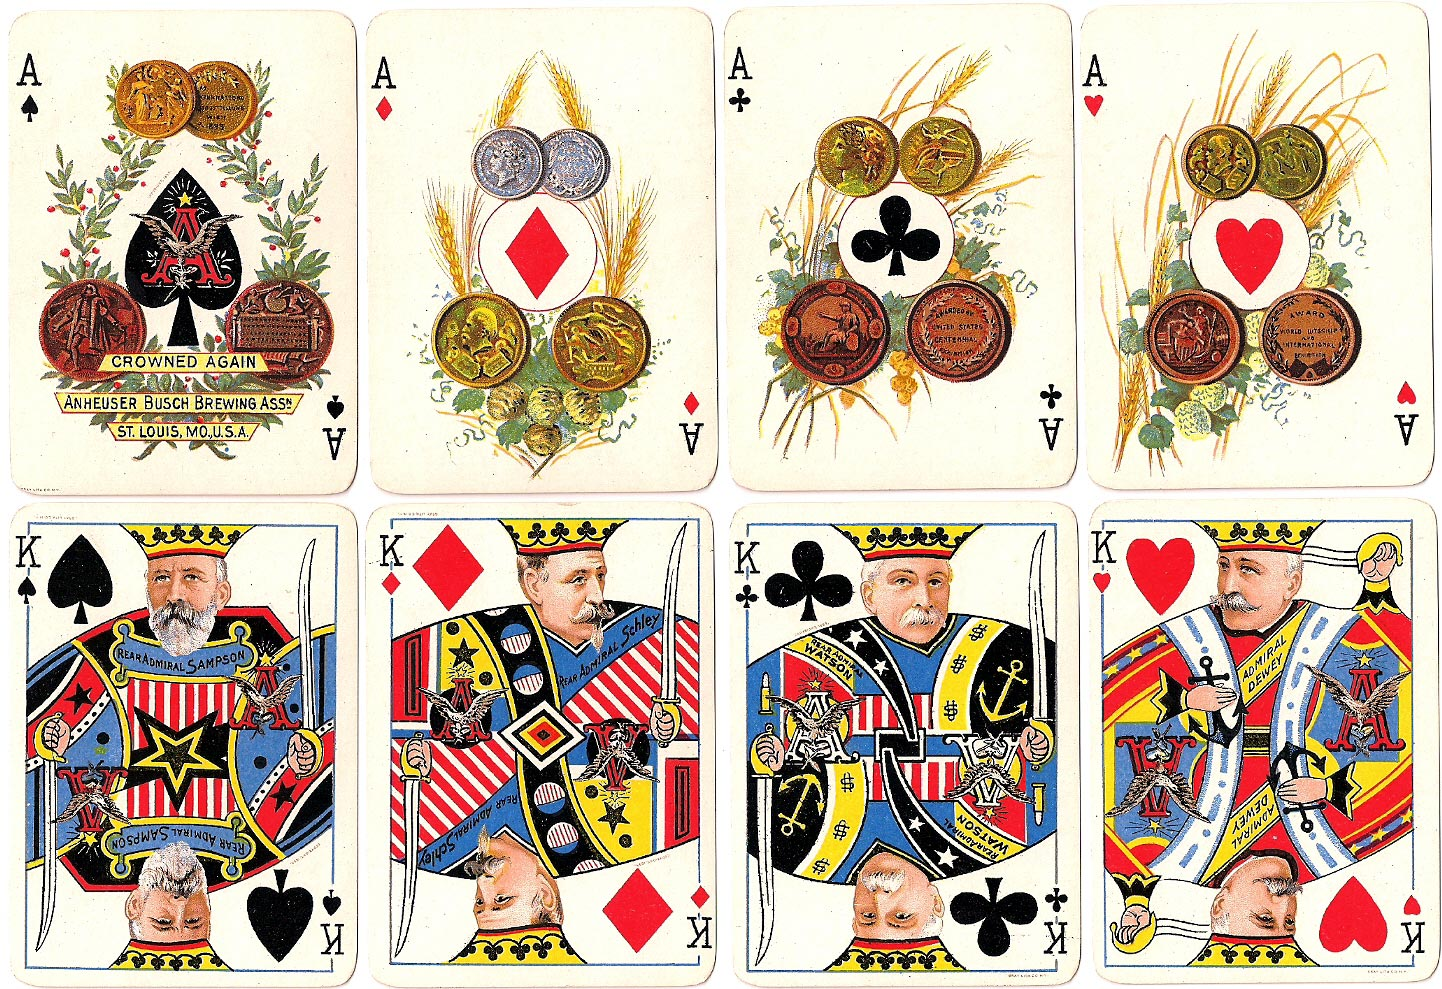 Anheuser-Busch Spanish American War playing cards, published by Gray Lithograph Co., 1899